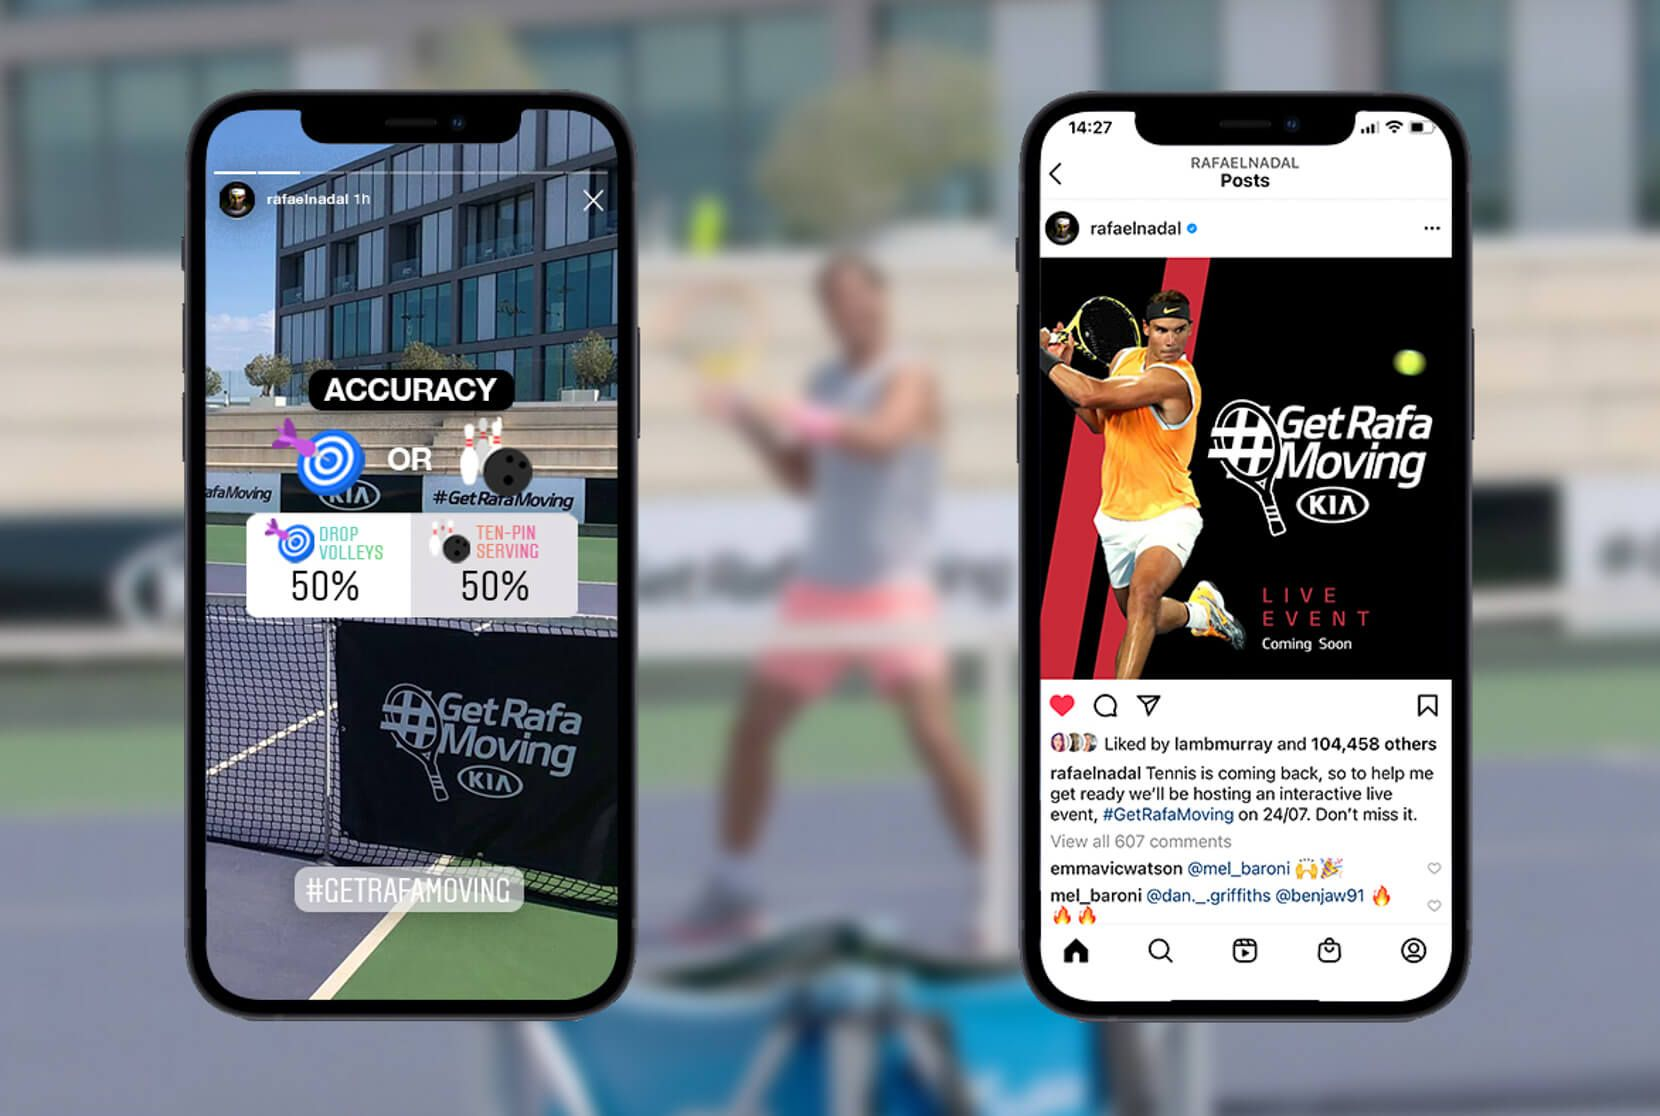 Two mobile phones show instagram posts about the #getrafamoving campaign starring Rafa Nadal